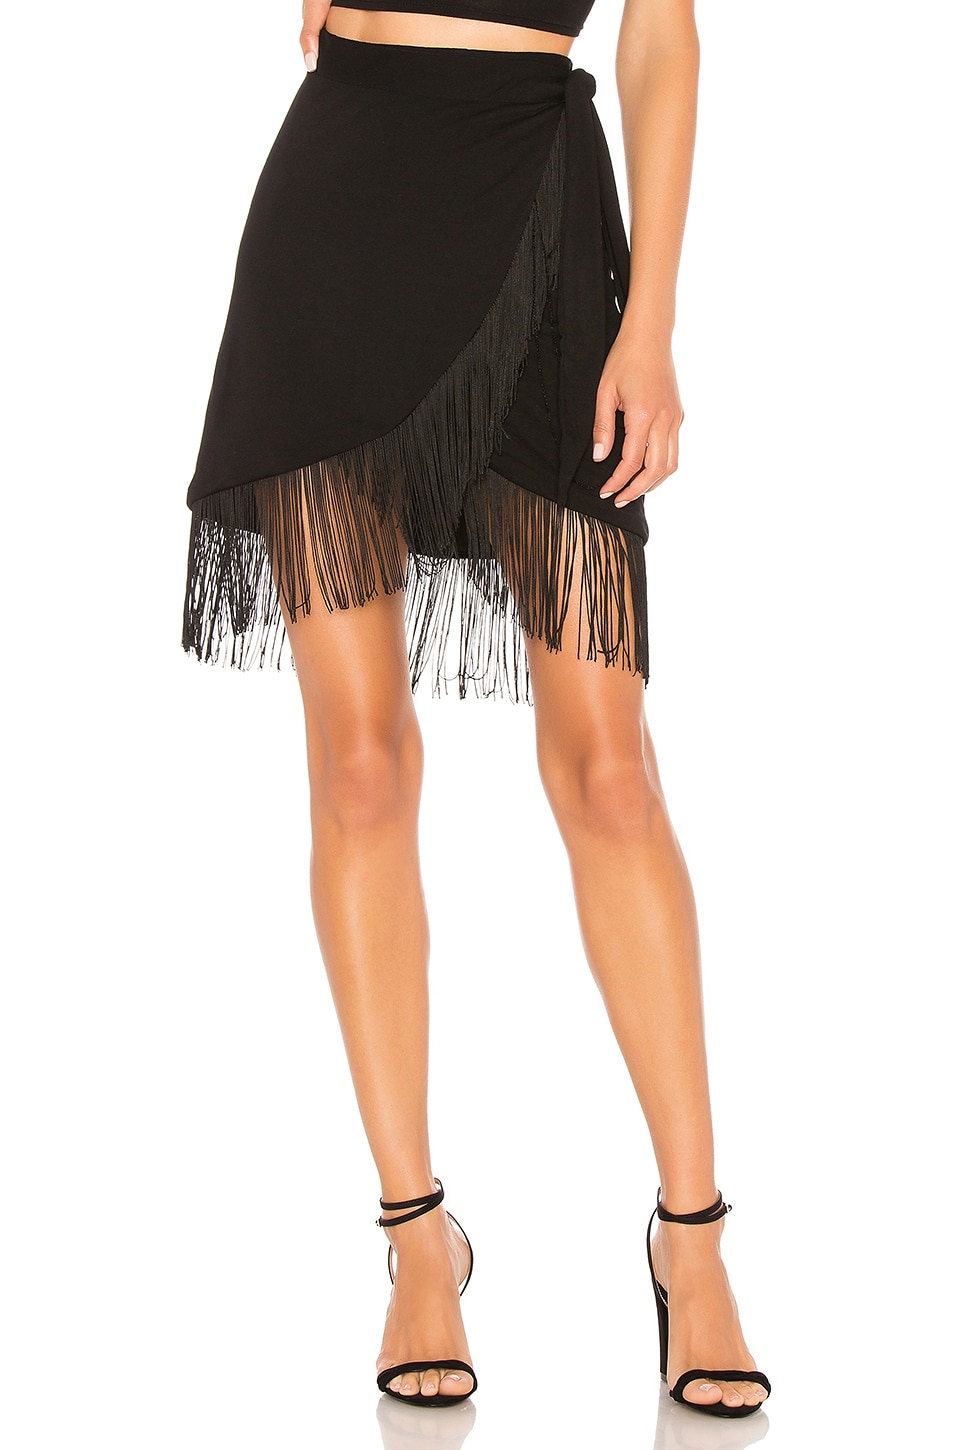 House of Harlow 1960 x REVOLVE Aldo Skirt in Noir